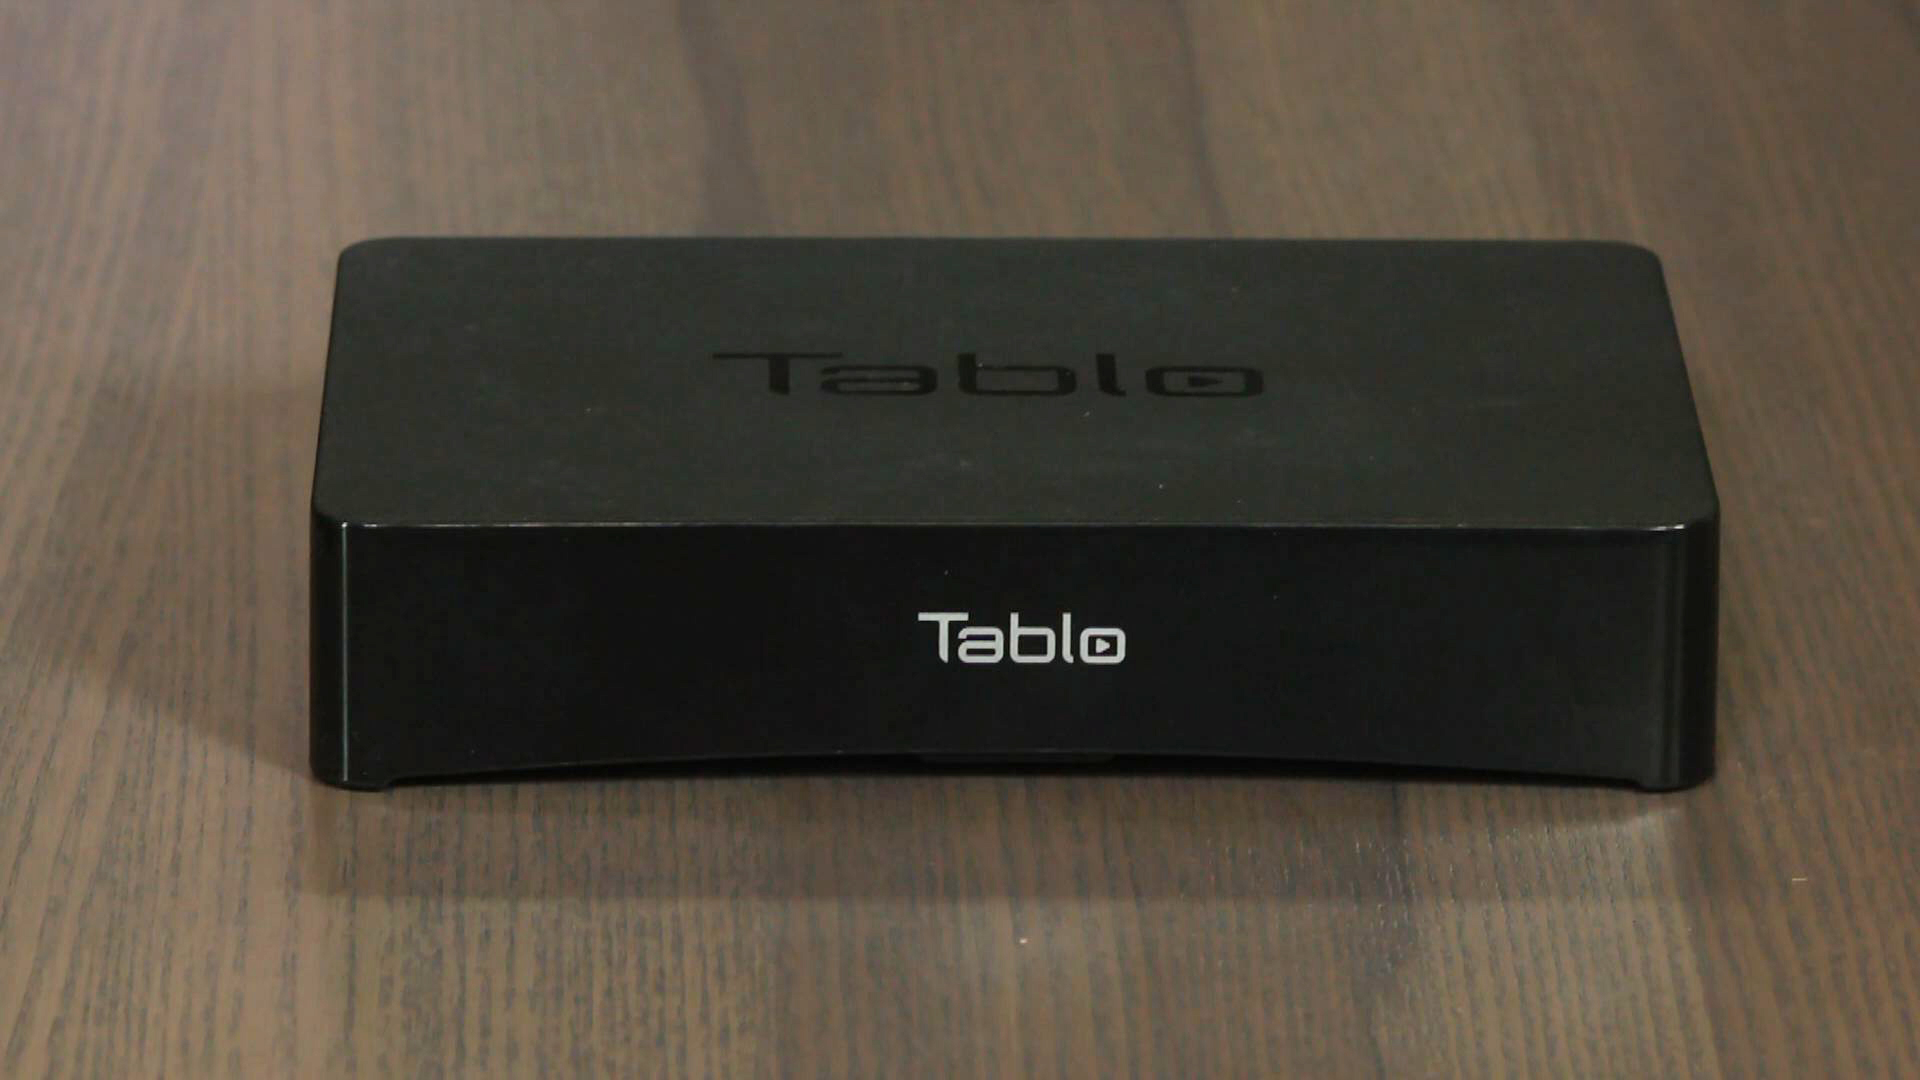 Video: Nuvyyo Tablo review: A geek-friendly DVR for over-the-air TV